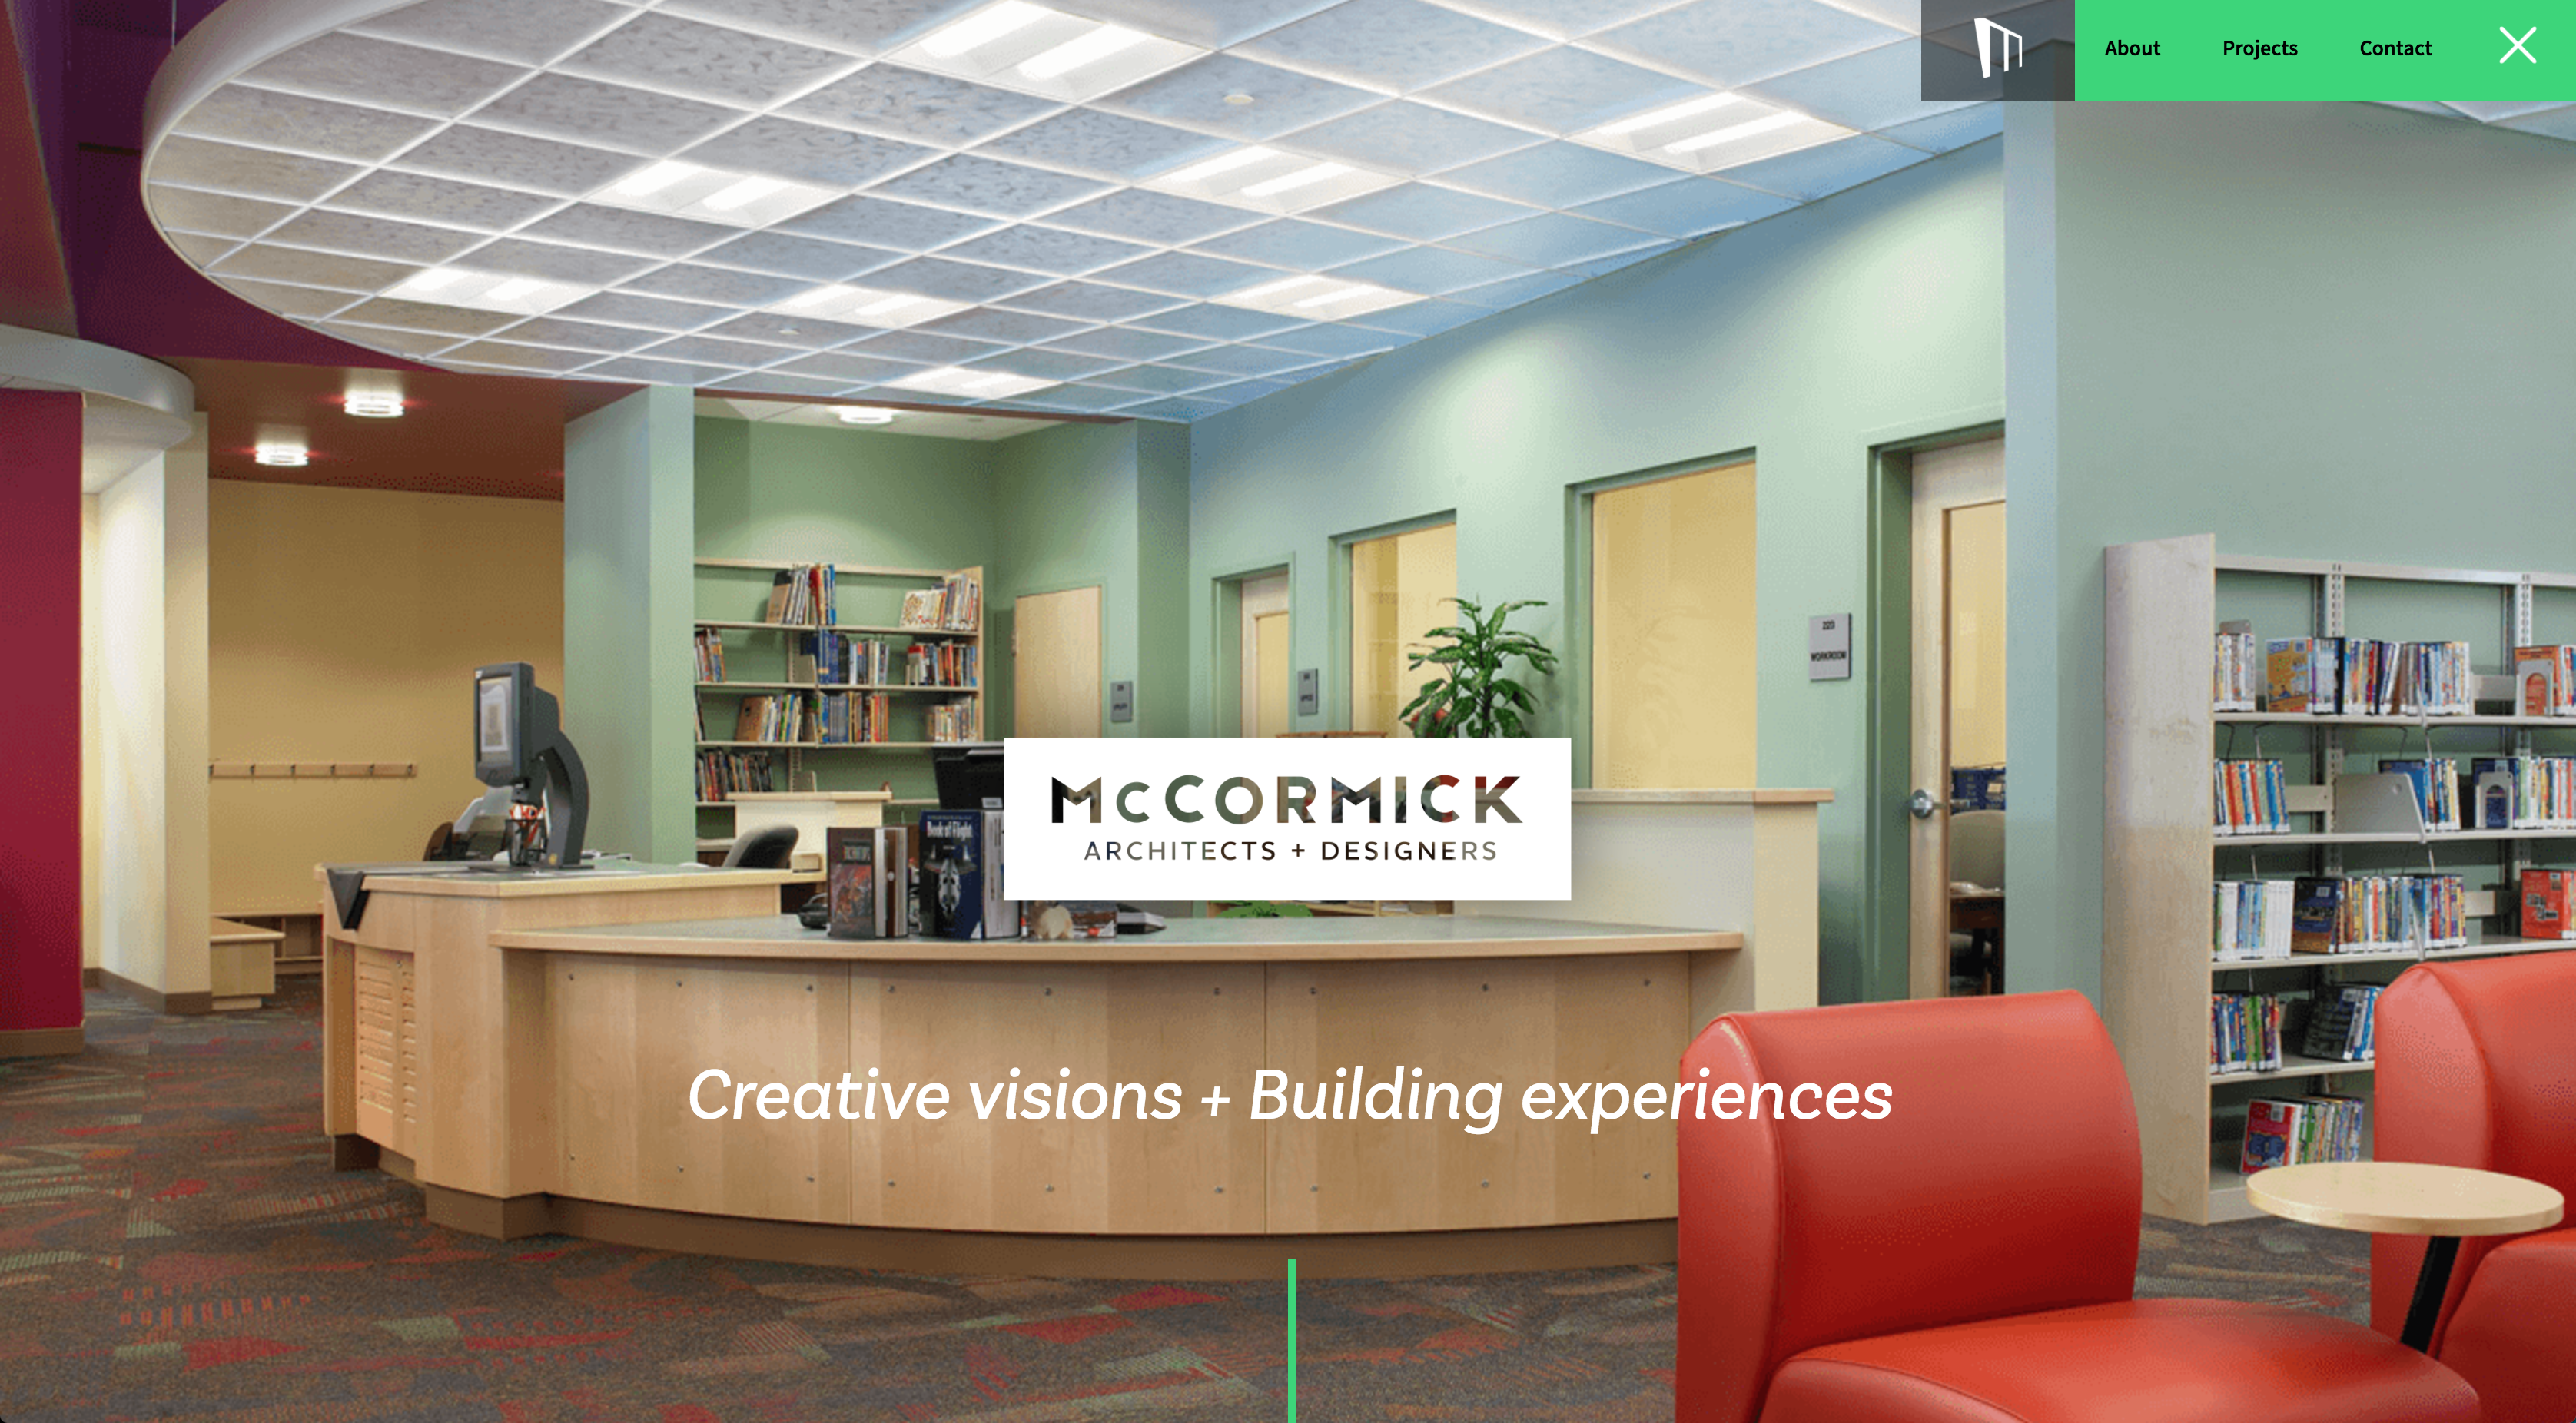 McCormick Architects + Designers